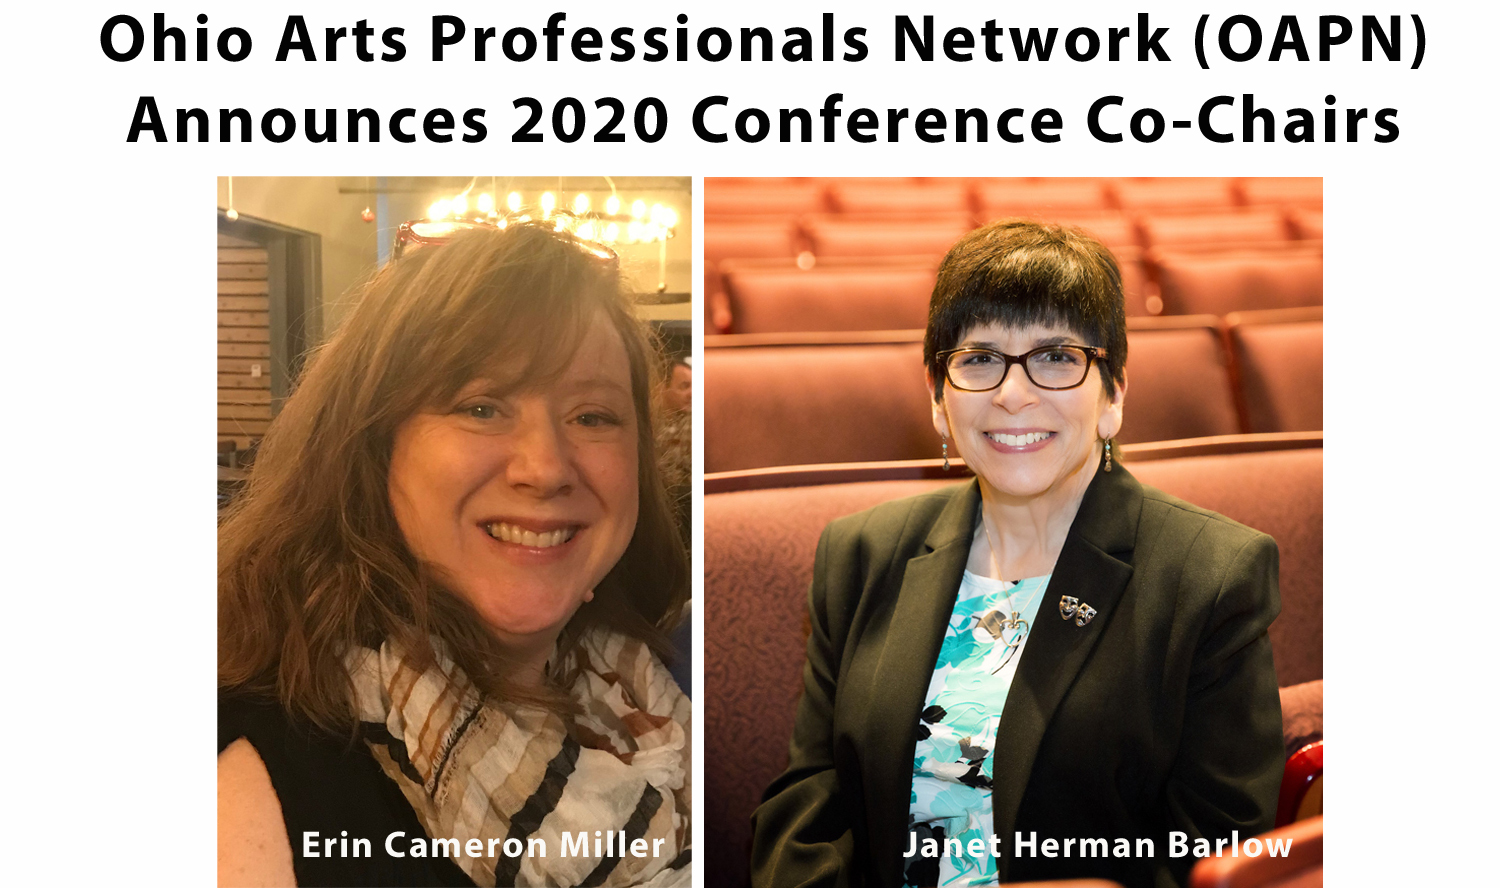 Ohio Arts Professionals Network (OAPN) Announces 2020 Conference Co-Chairs